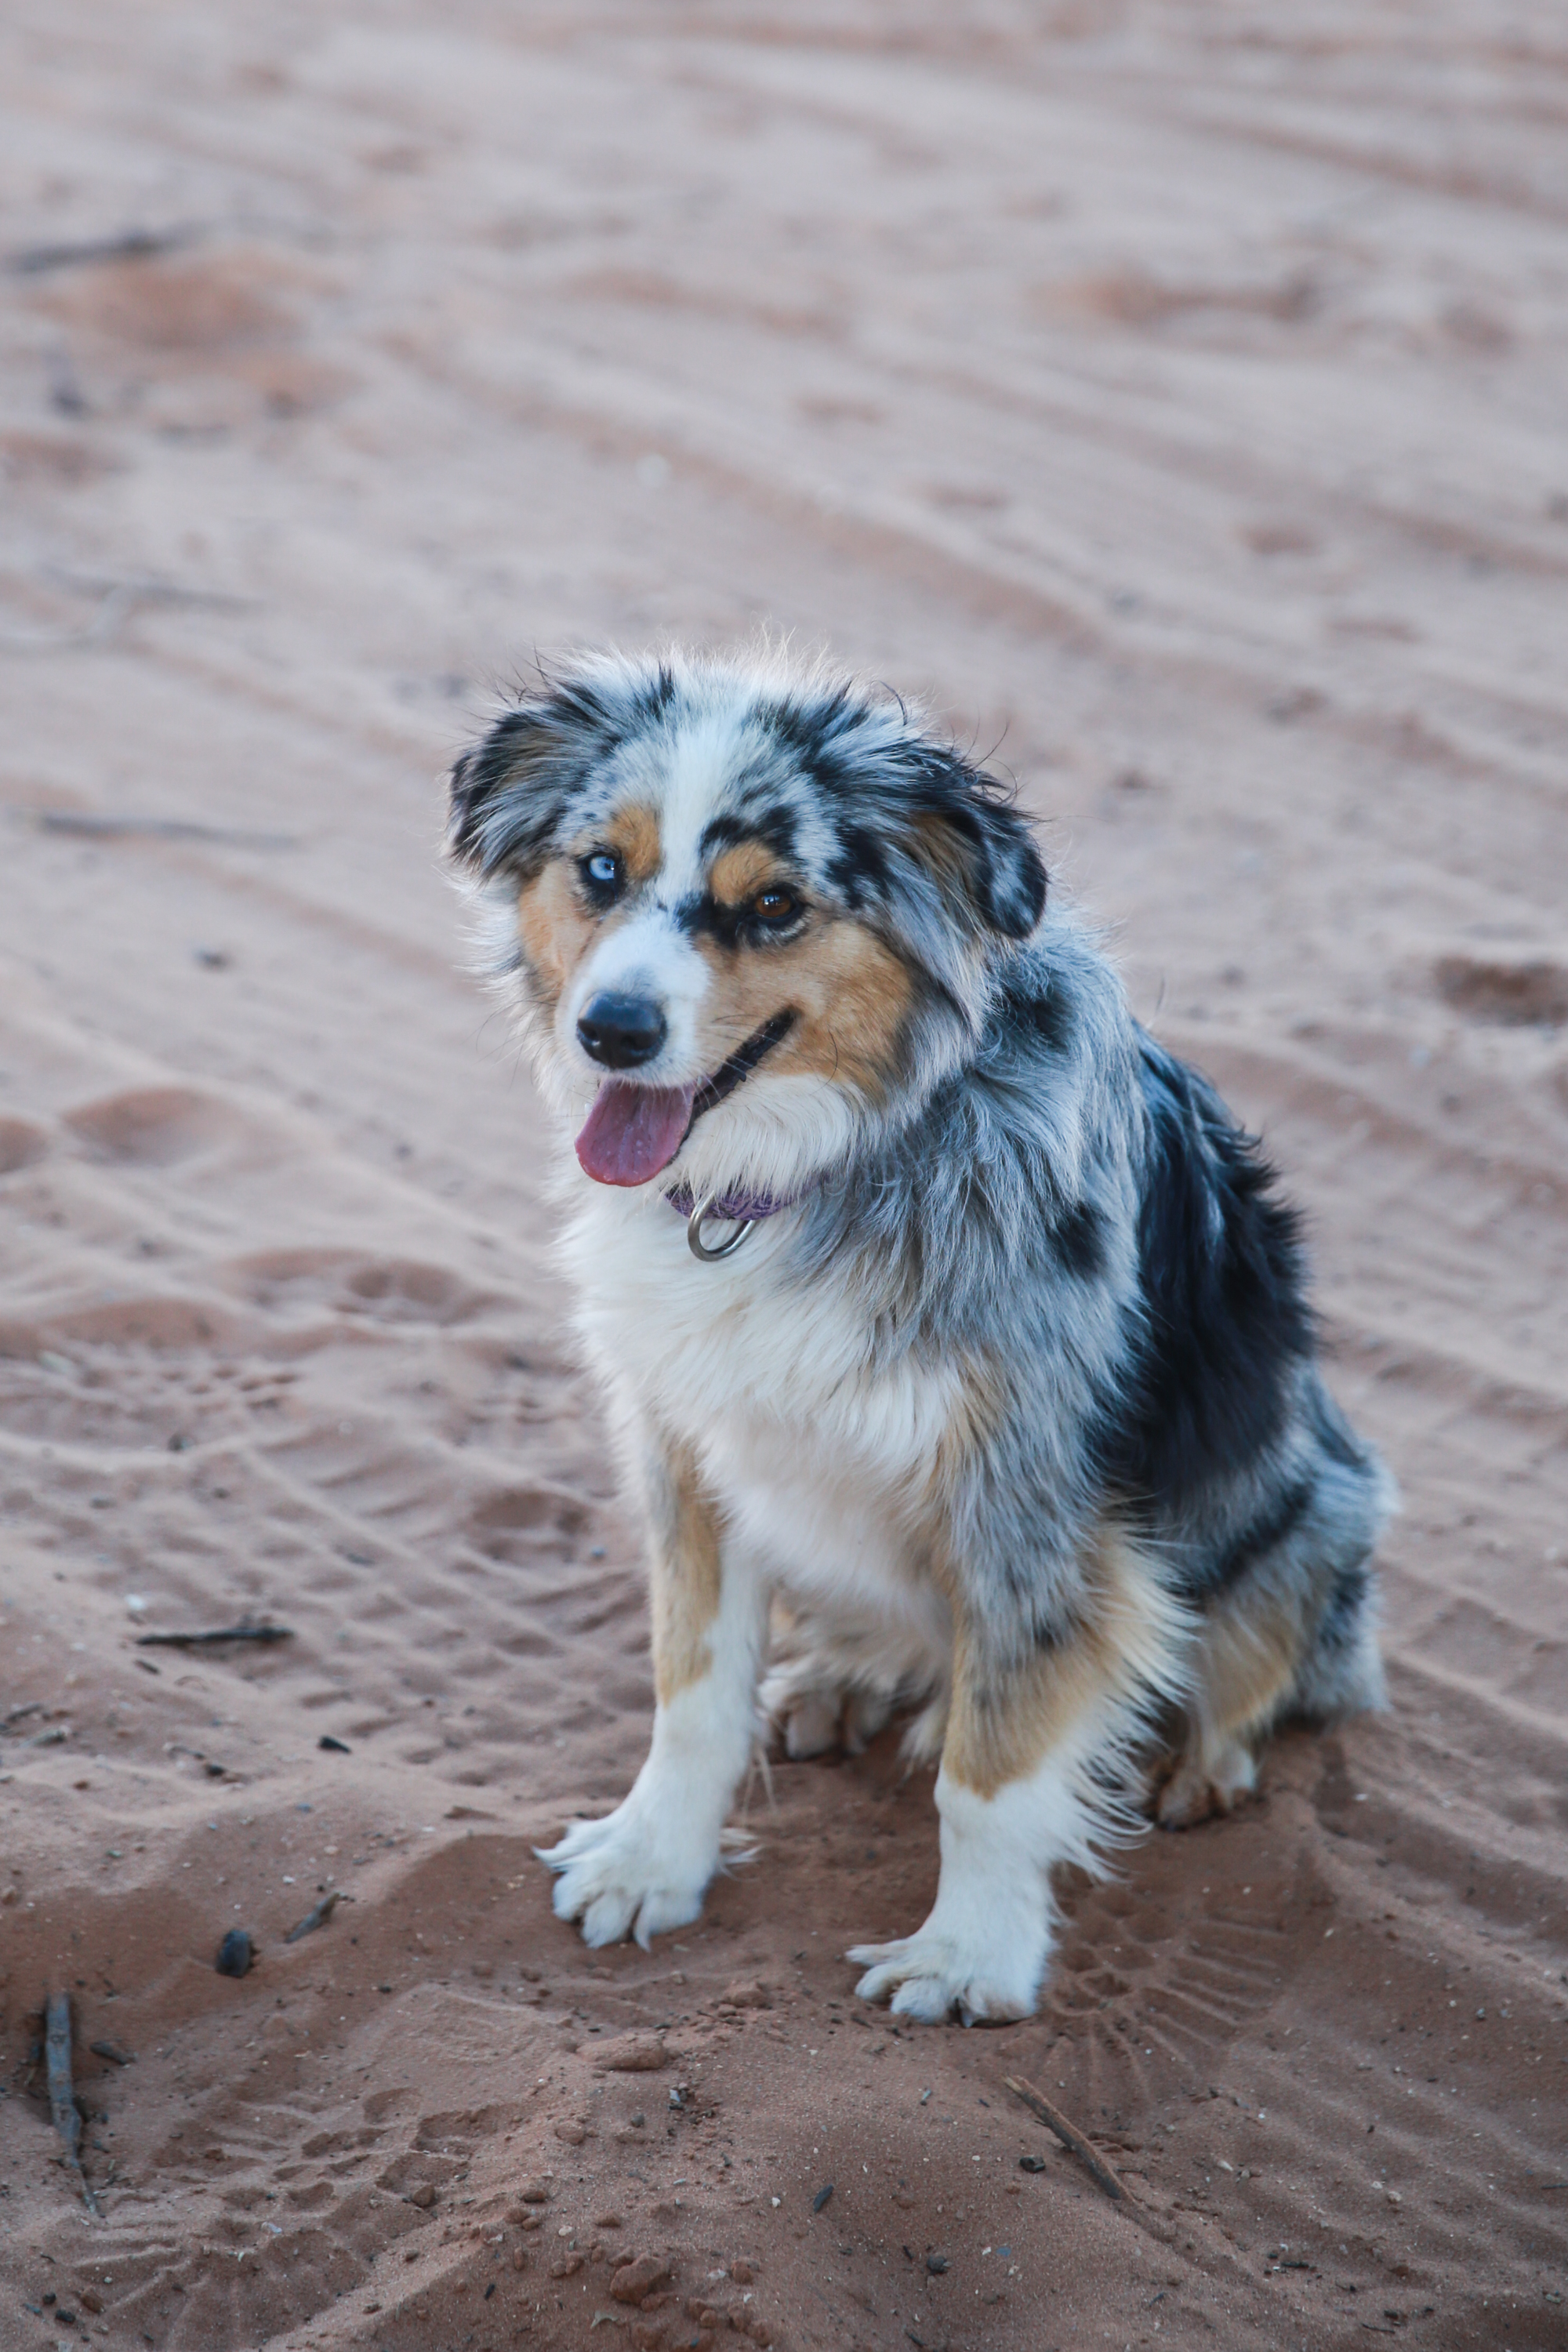 I can't remember this little feller's name, but he ran around us having a grand 'ole time chasing jackrabbits through the desert. I loved his eyes.